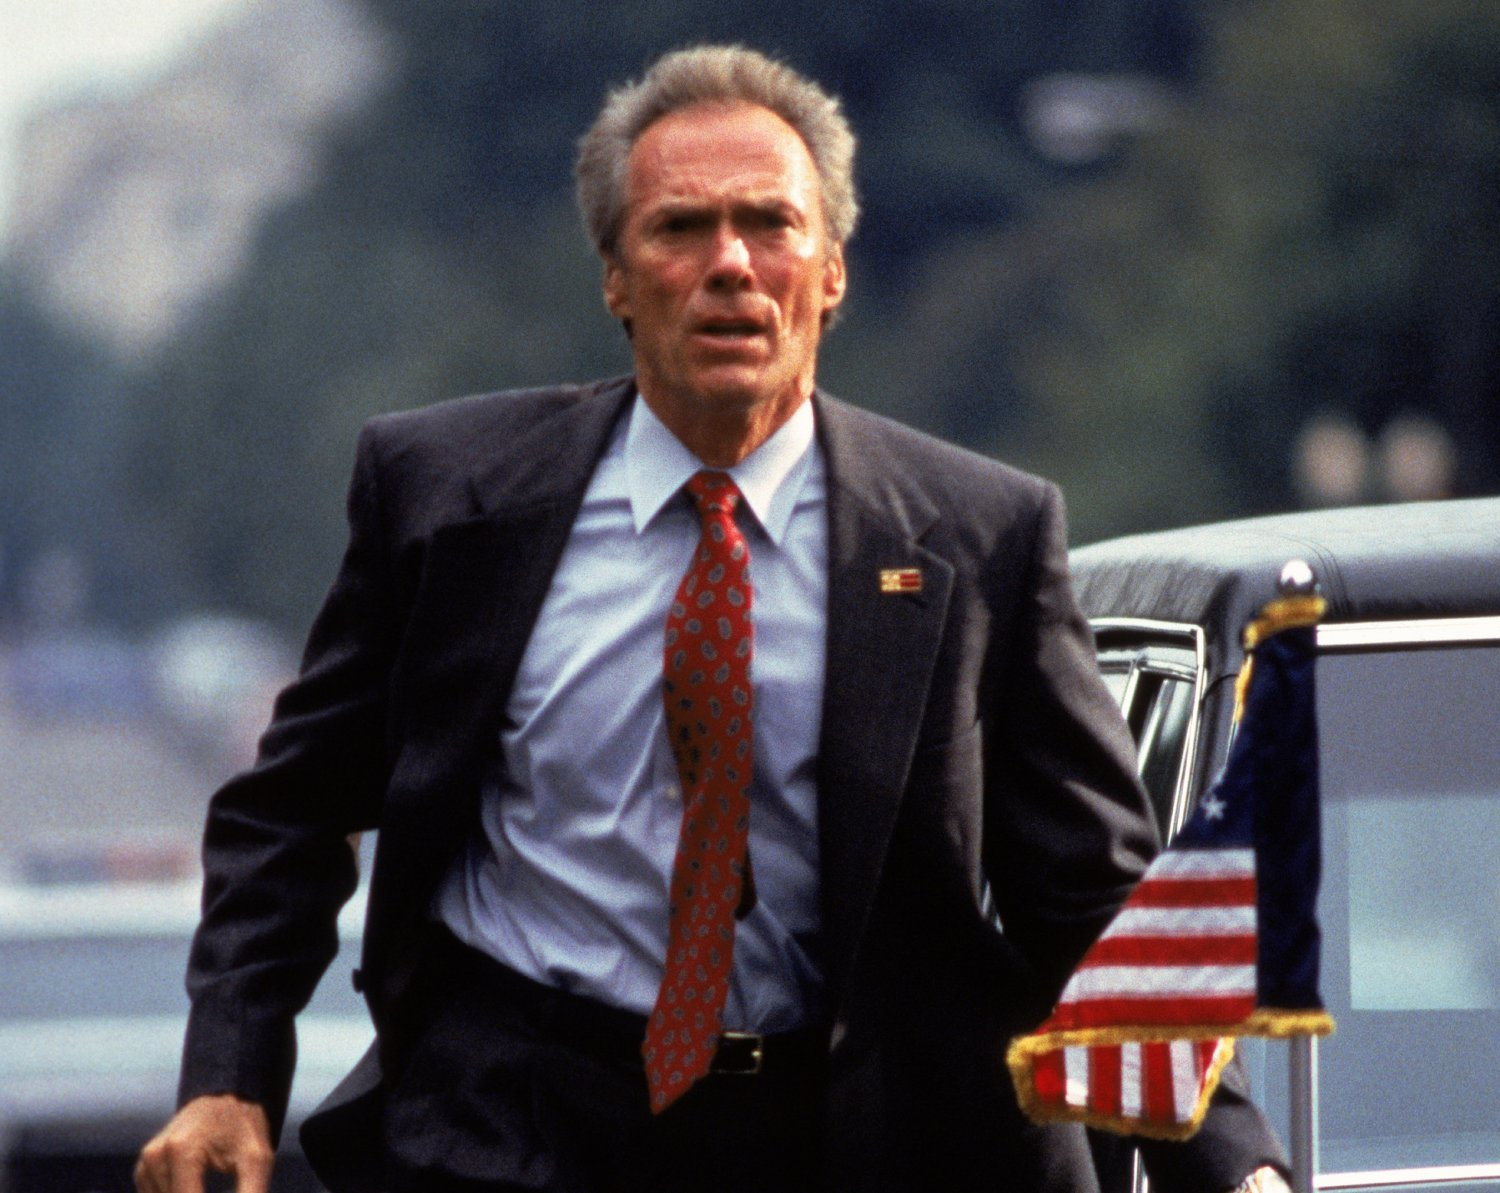 g36 20 Things You Didn't Know About Clint Eastwood